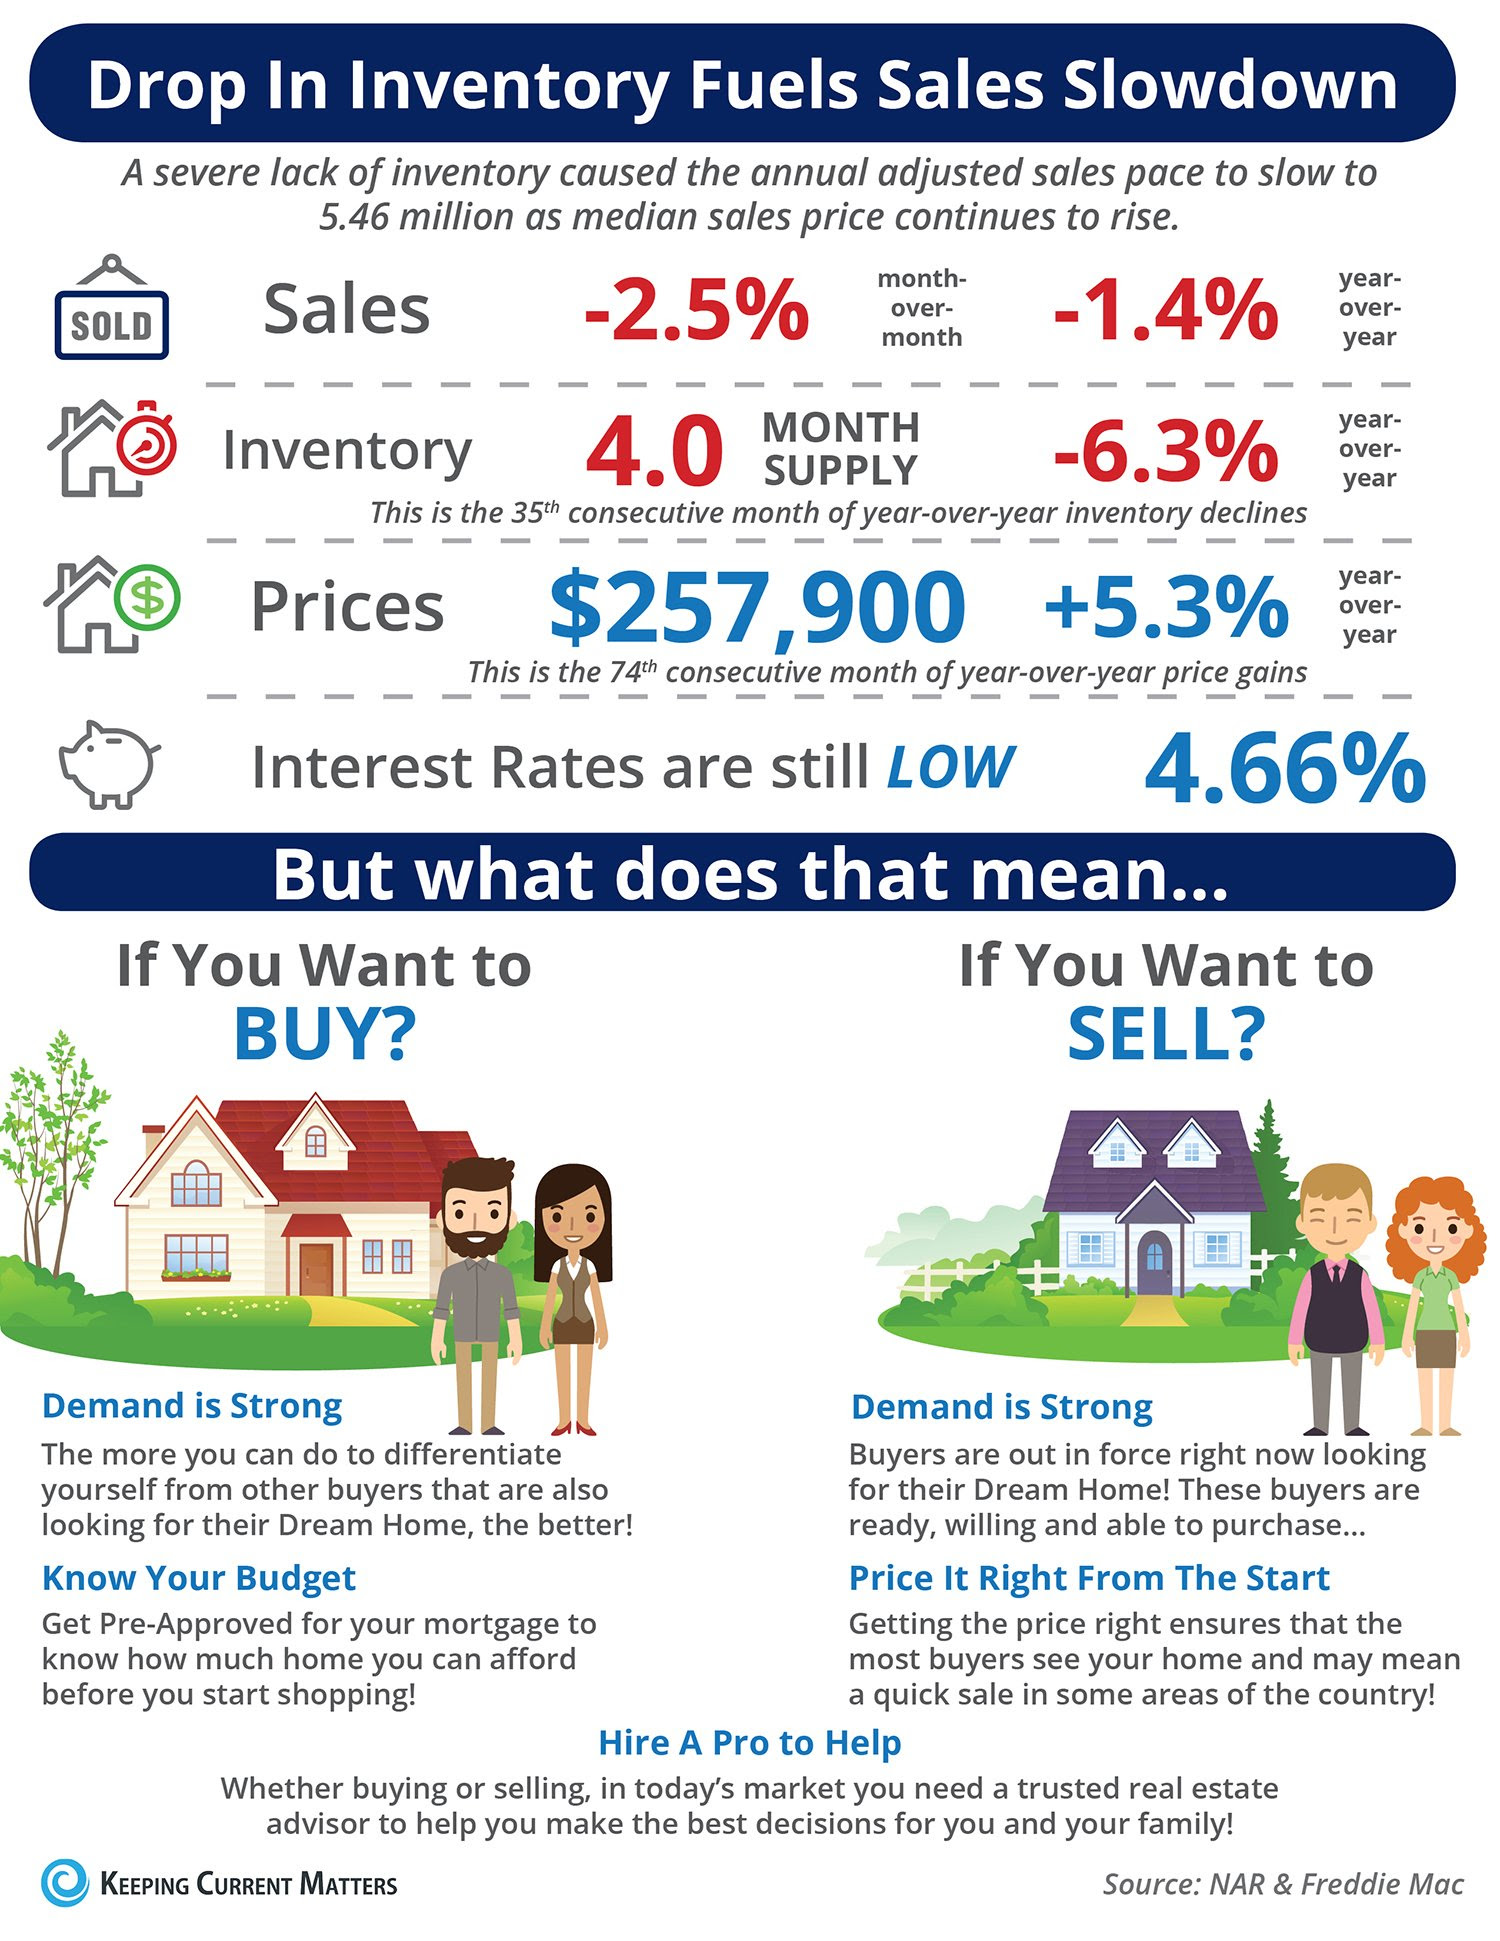 Drop in Inventory Fuels Sales Slowdown [INFOGRAPHIC] | Keeping Current Matters